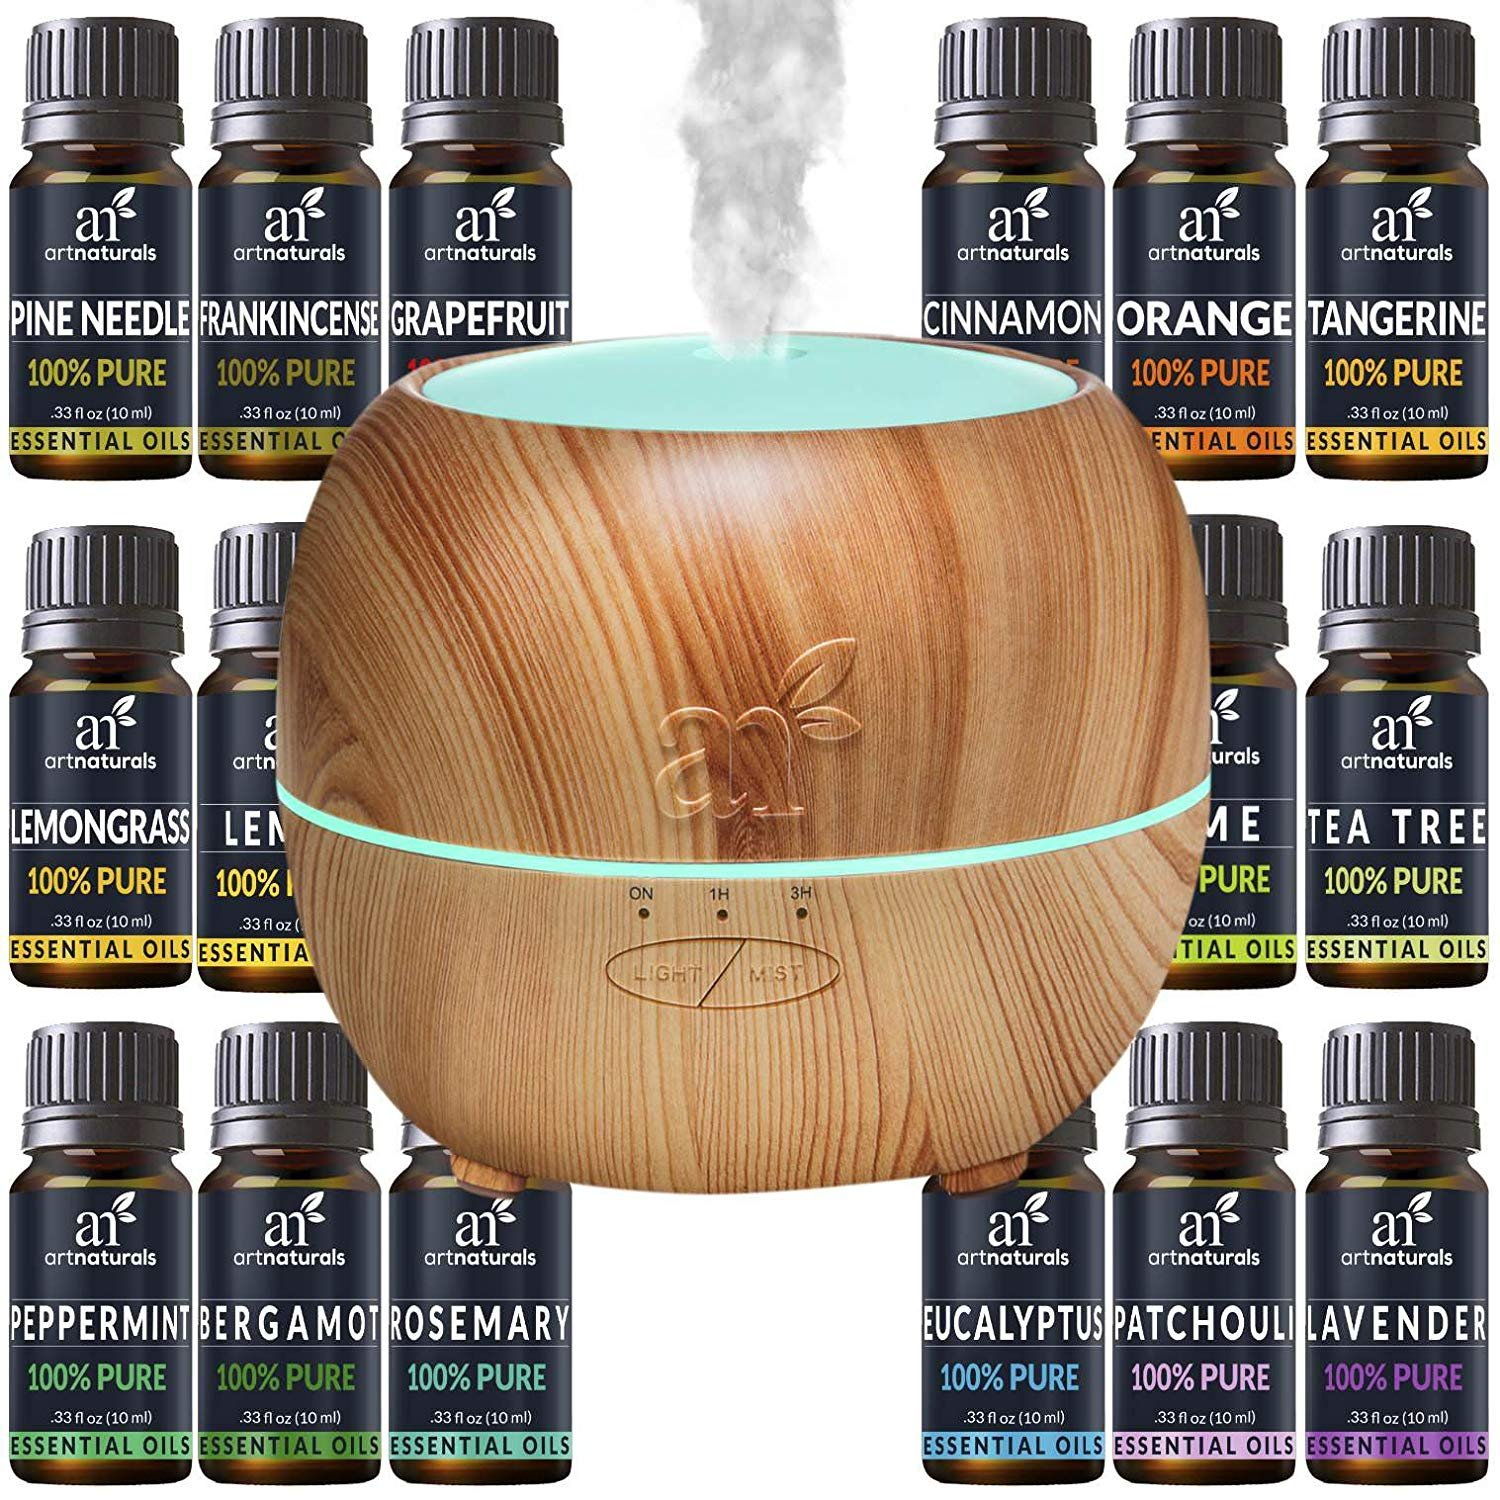 ArtNaturals Aromatherapy Essential Oil and Diffuser Gift Set - (150ml Tank & Top 16 Oils) - Peppermint, Tee Tree, Lavender & Eucalyptus - Auto Shut-Off and 7 Color LED Lights – Therapeutic Grade